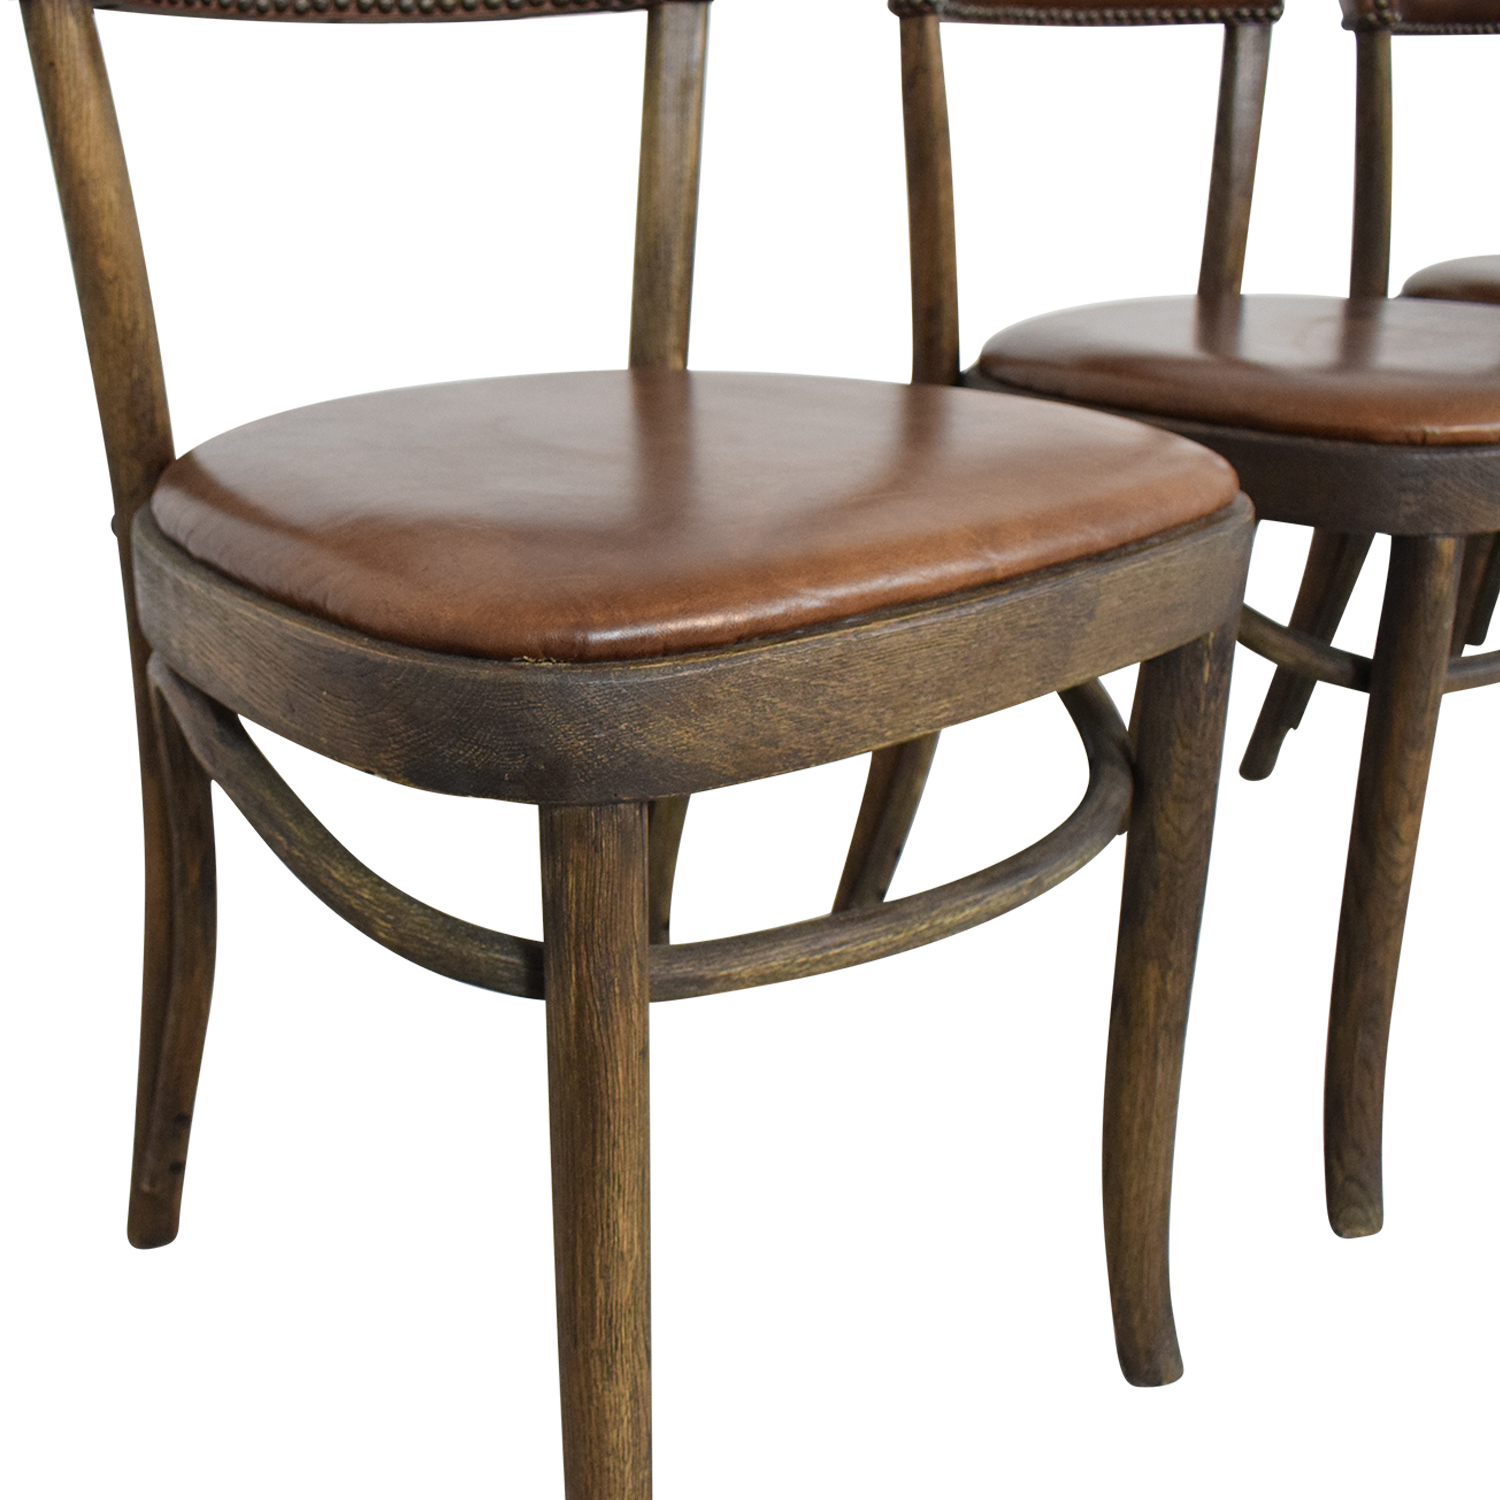 Restoration Hardware Restoration Hardware Vienna Cafe Leather Side Chairs dimensions